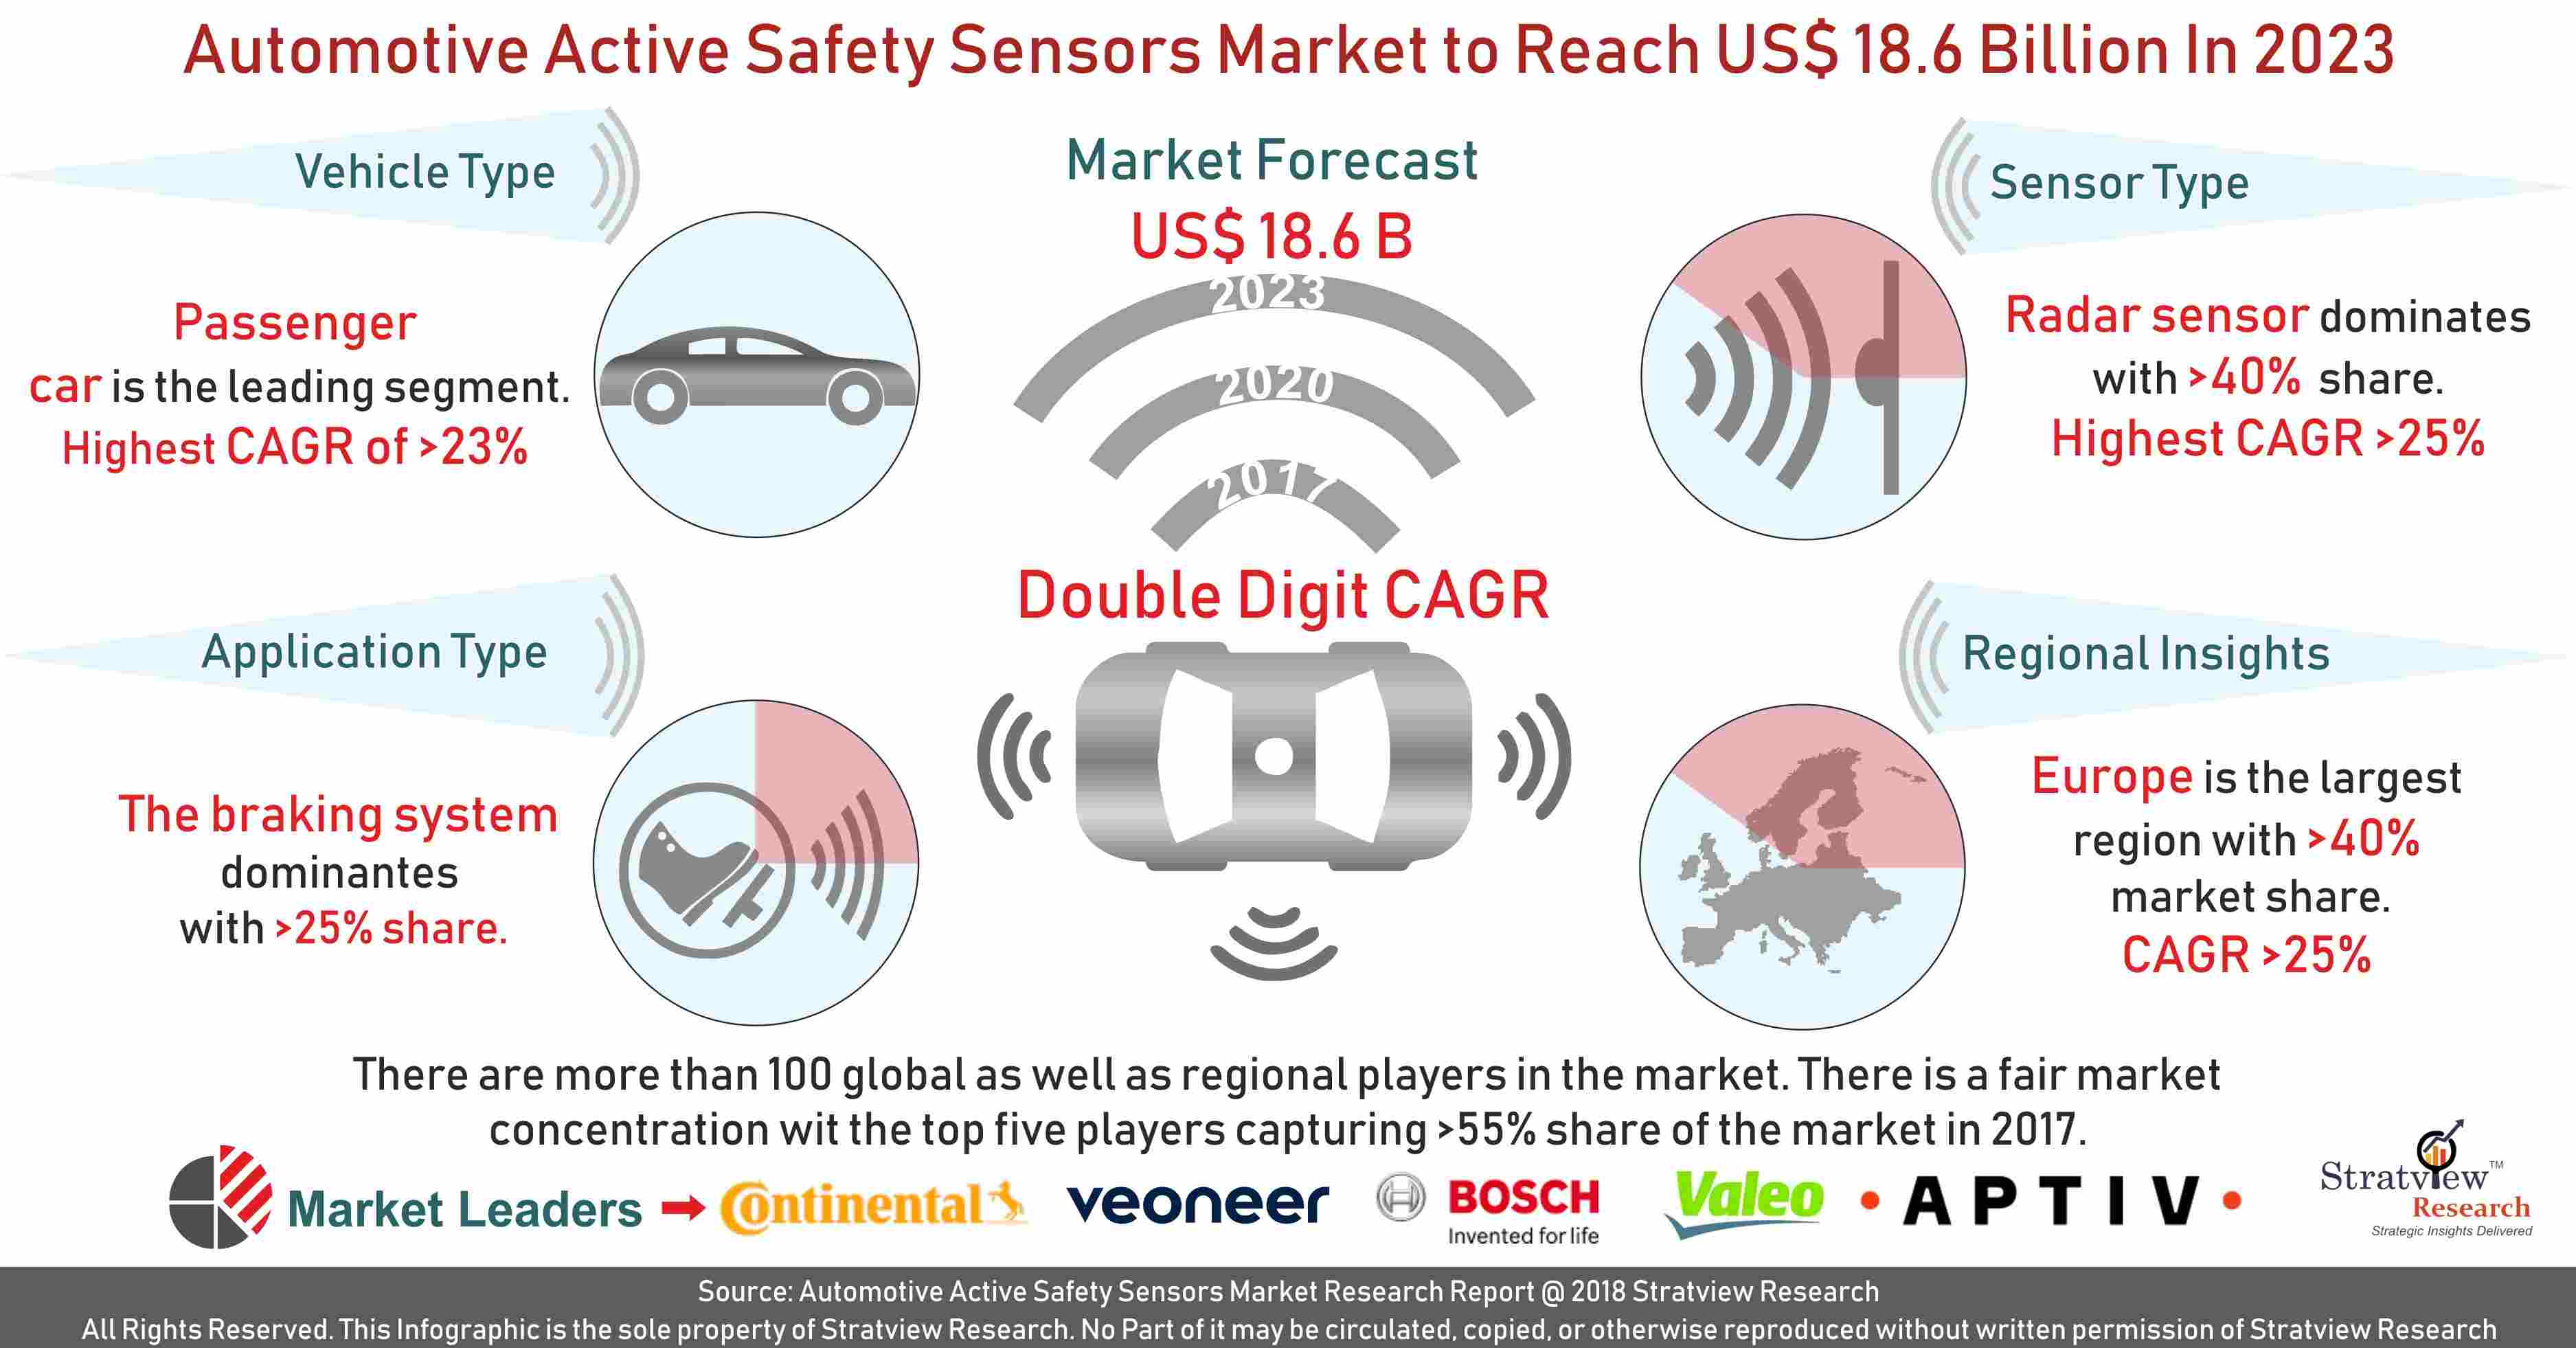 Automotive Active Safety Sensors Market